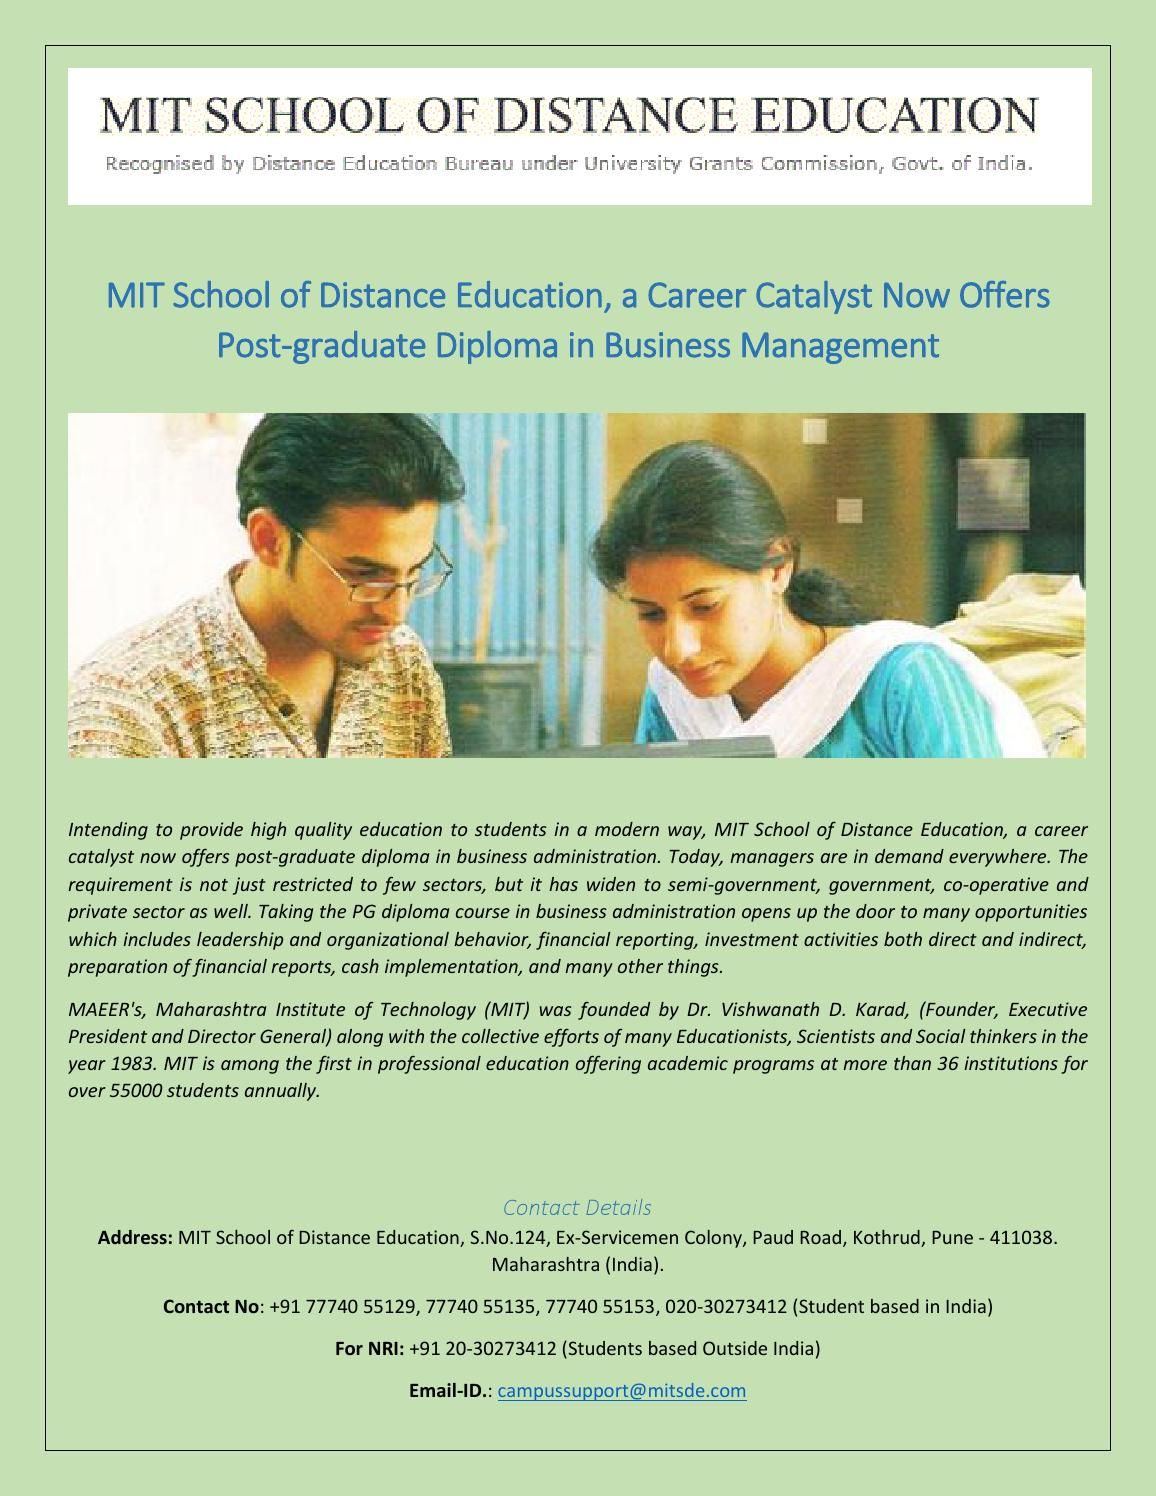 Mit School Of Distance Education Now Offers Post Graduate Diploma